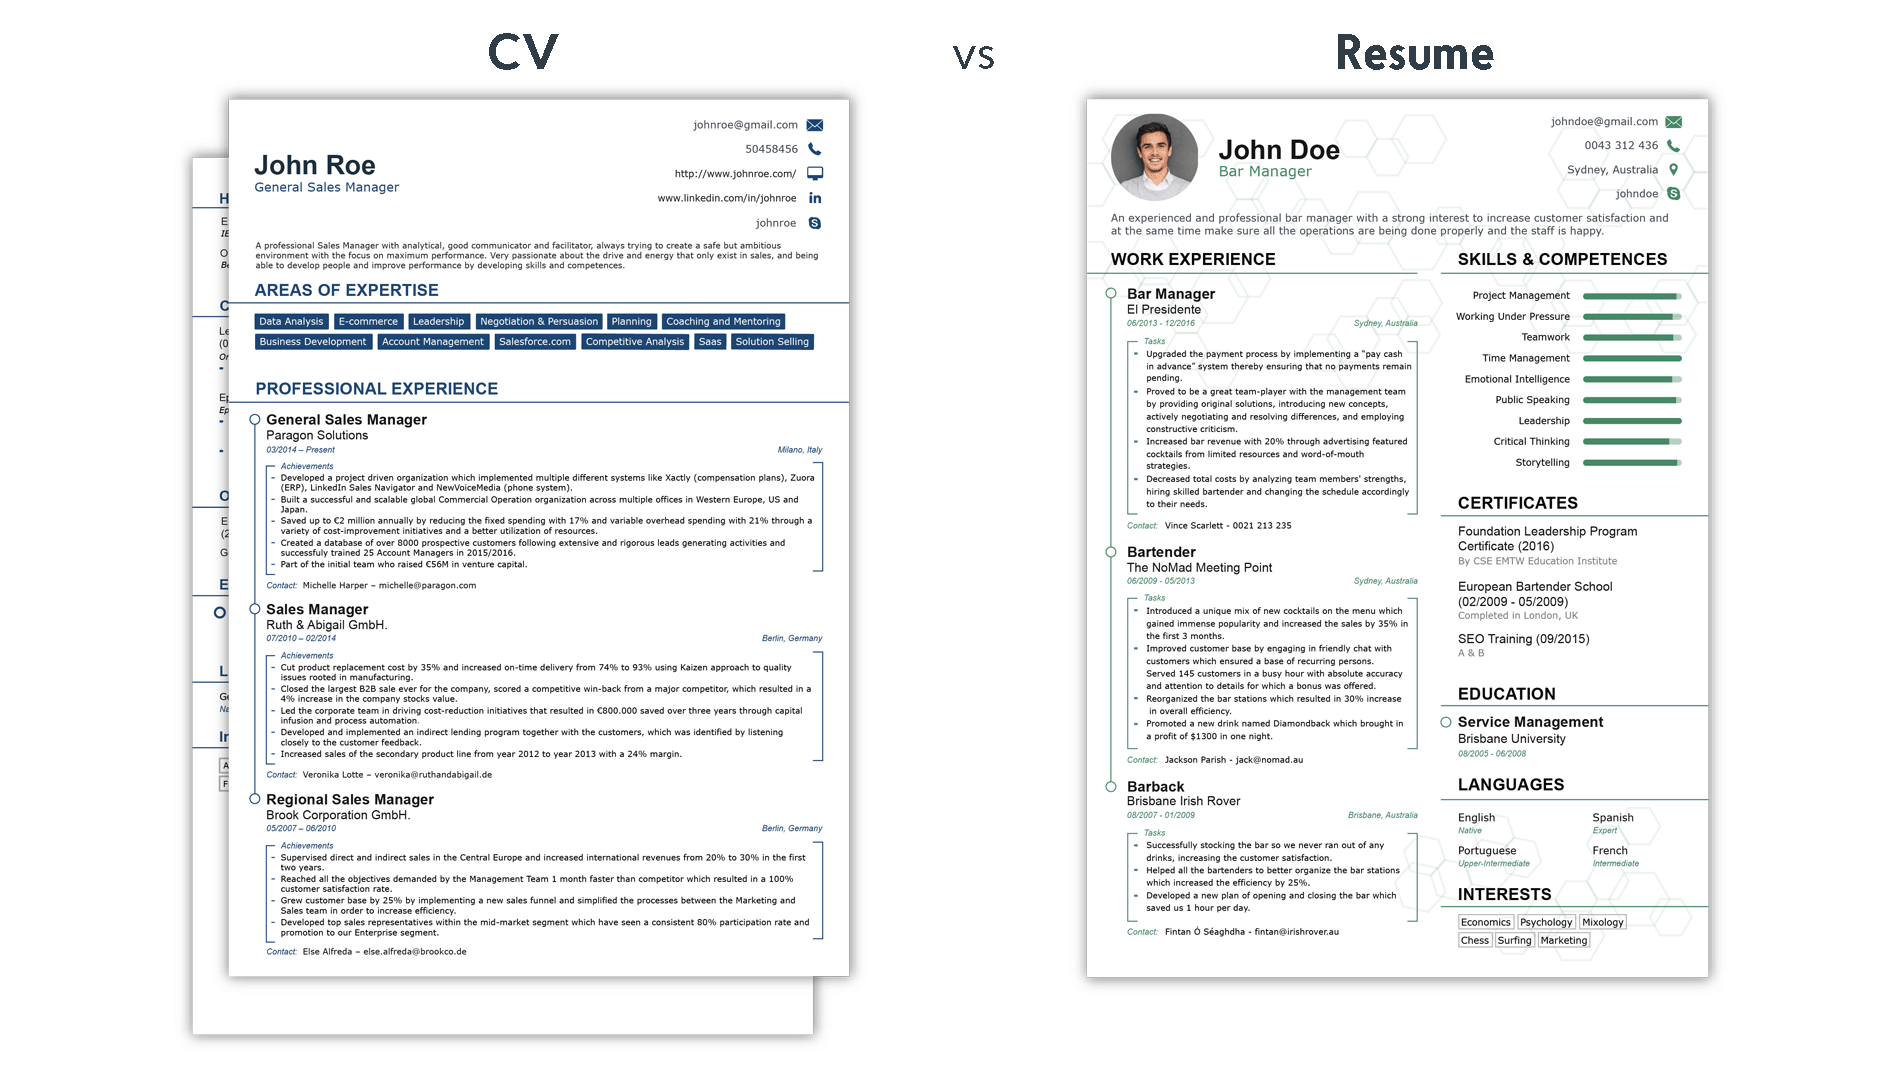 How To Write A Resume In 2019 Guide For Beginner